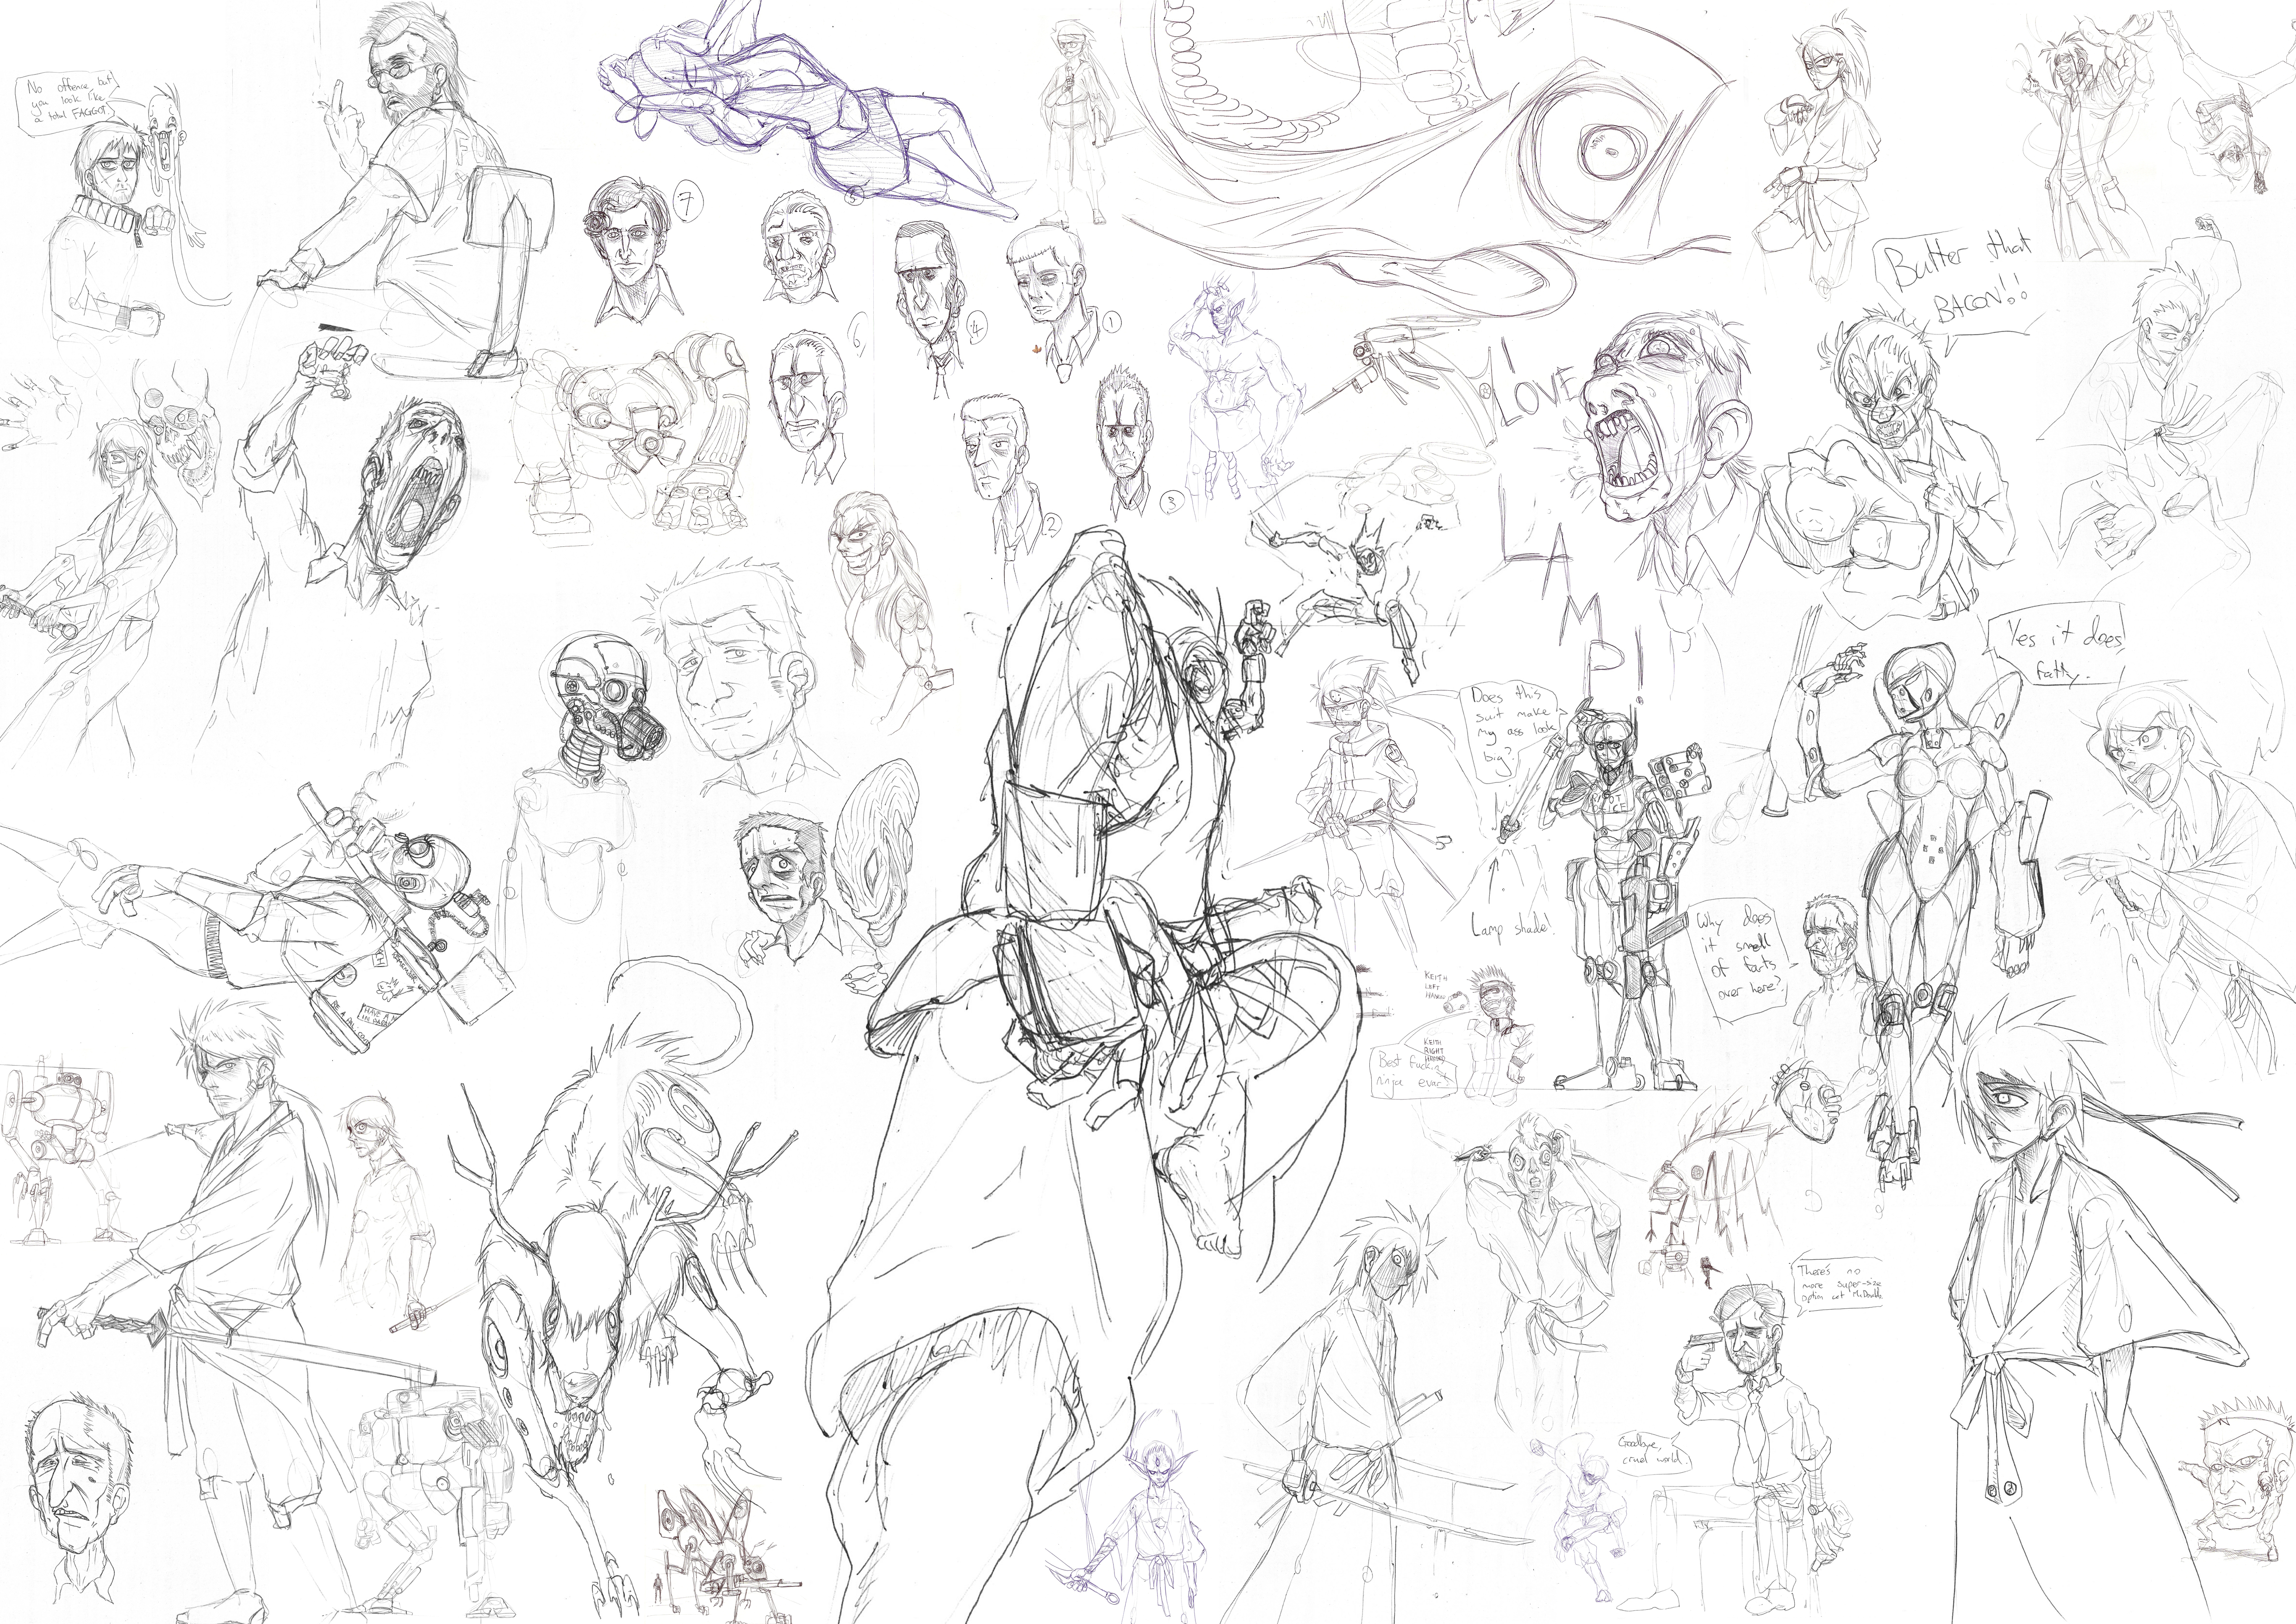 Oodles of Doodles